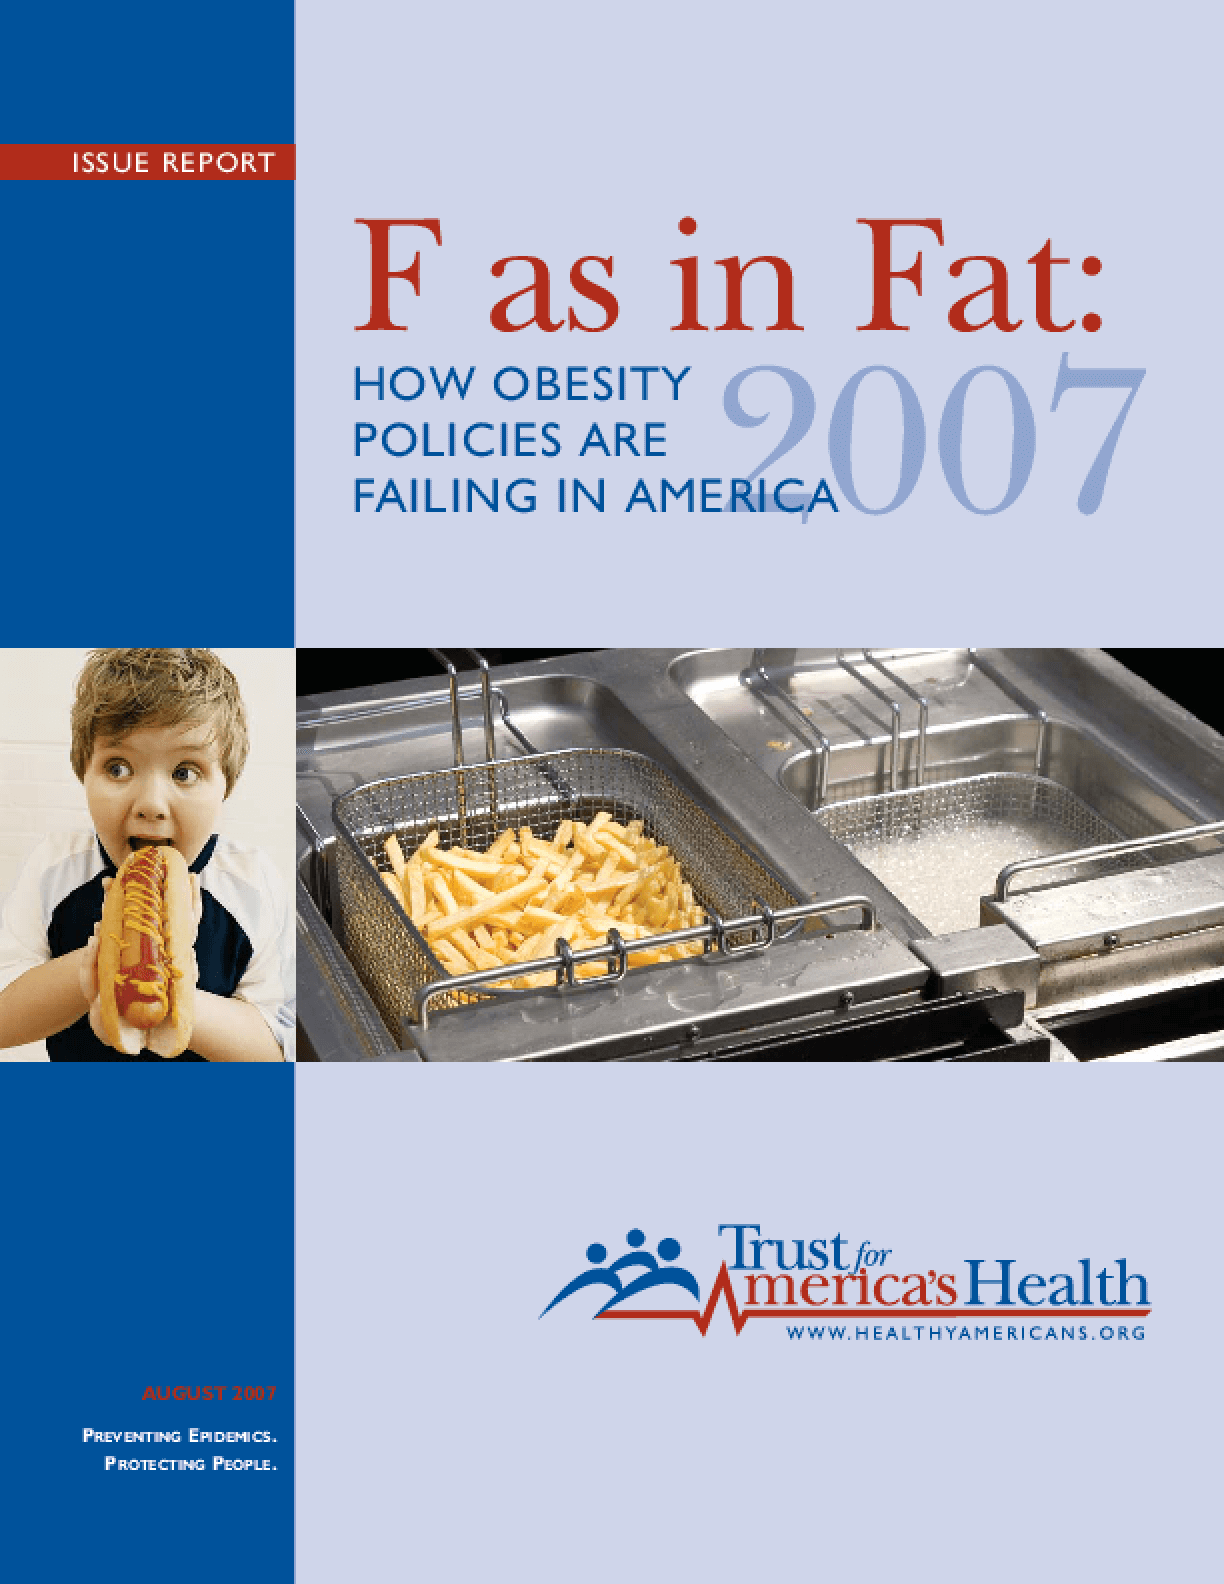 F as in Fat: How Obesity Policies are Failing in America, 2007